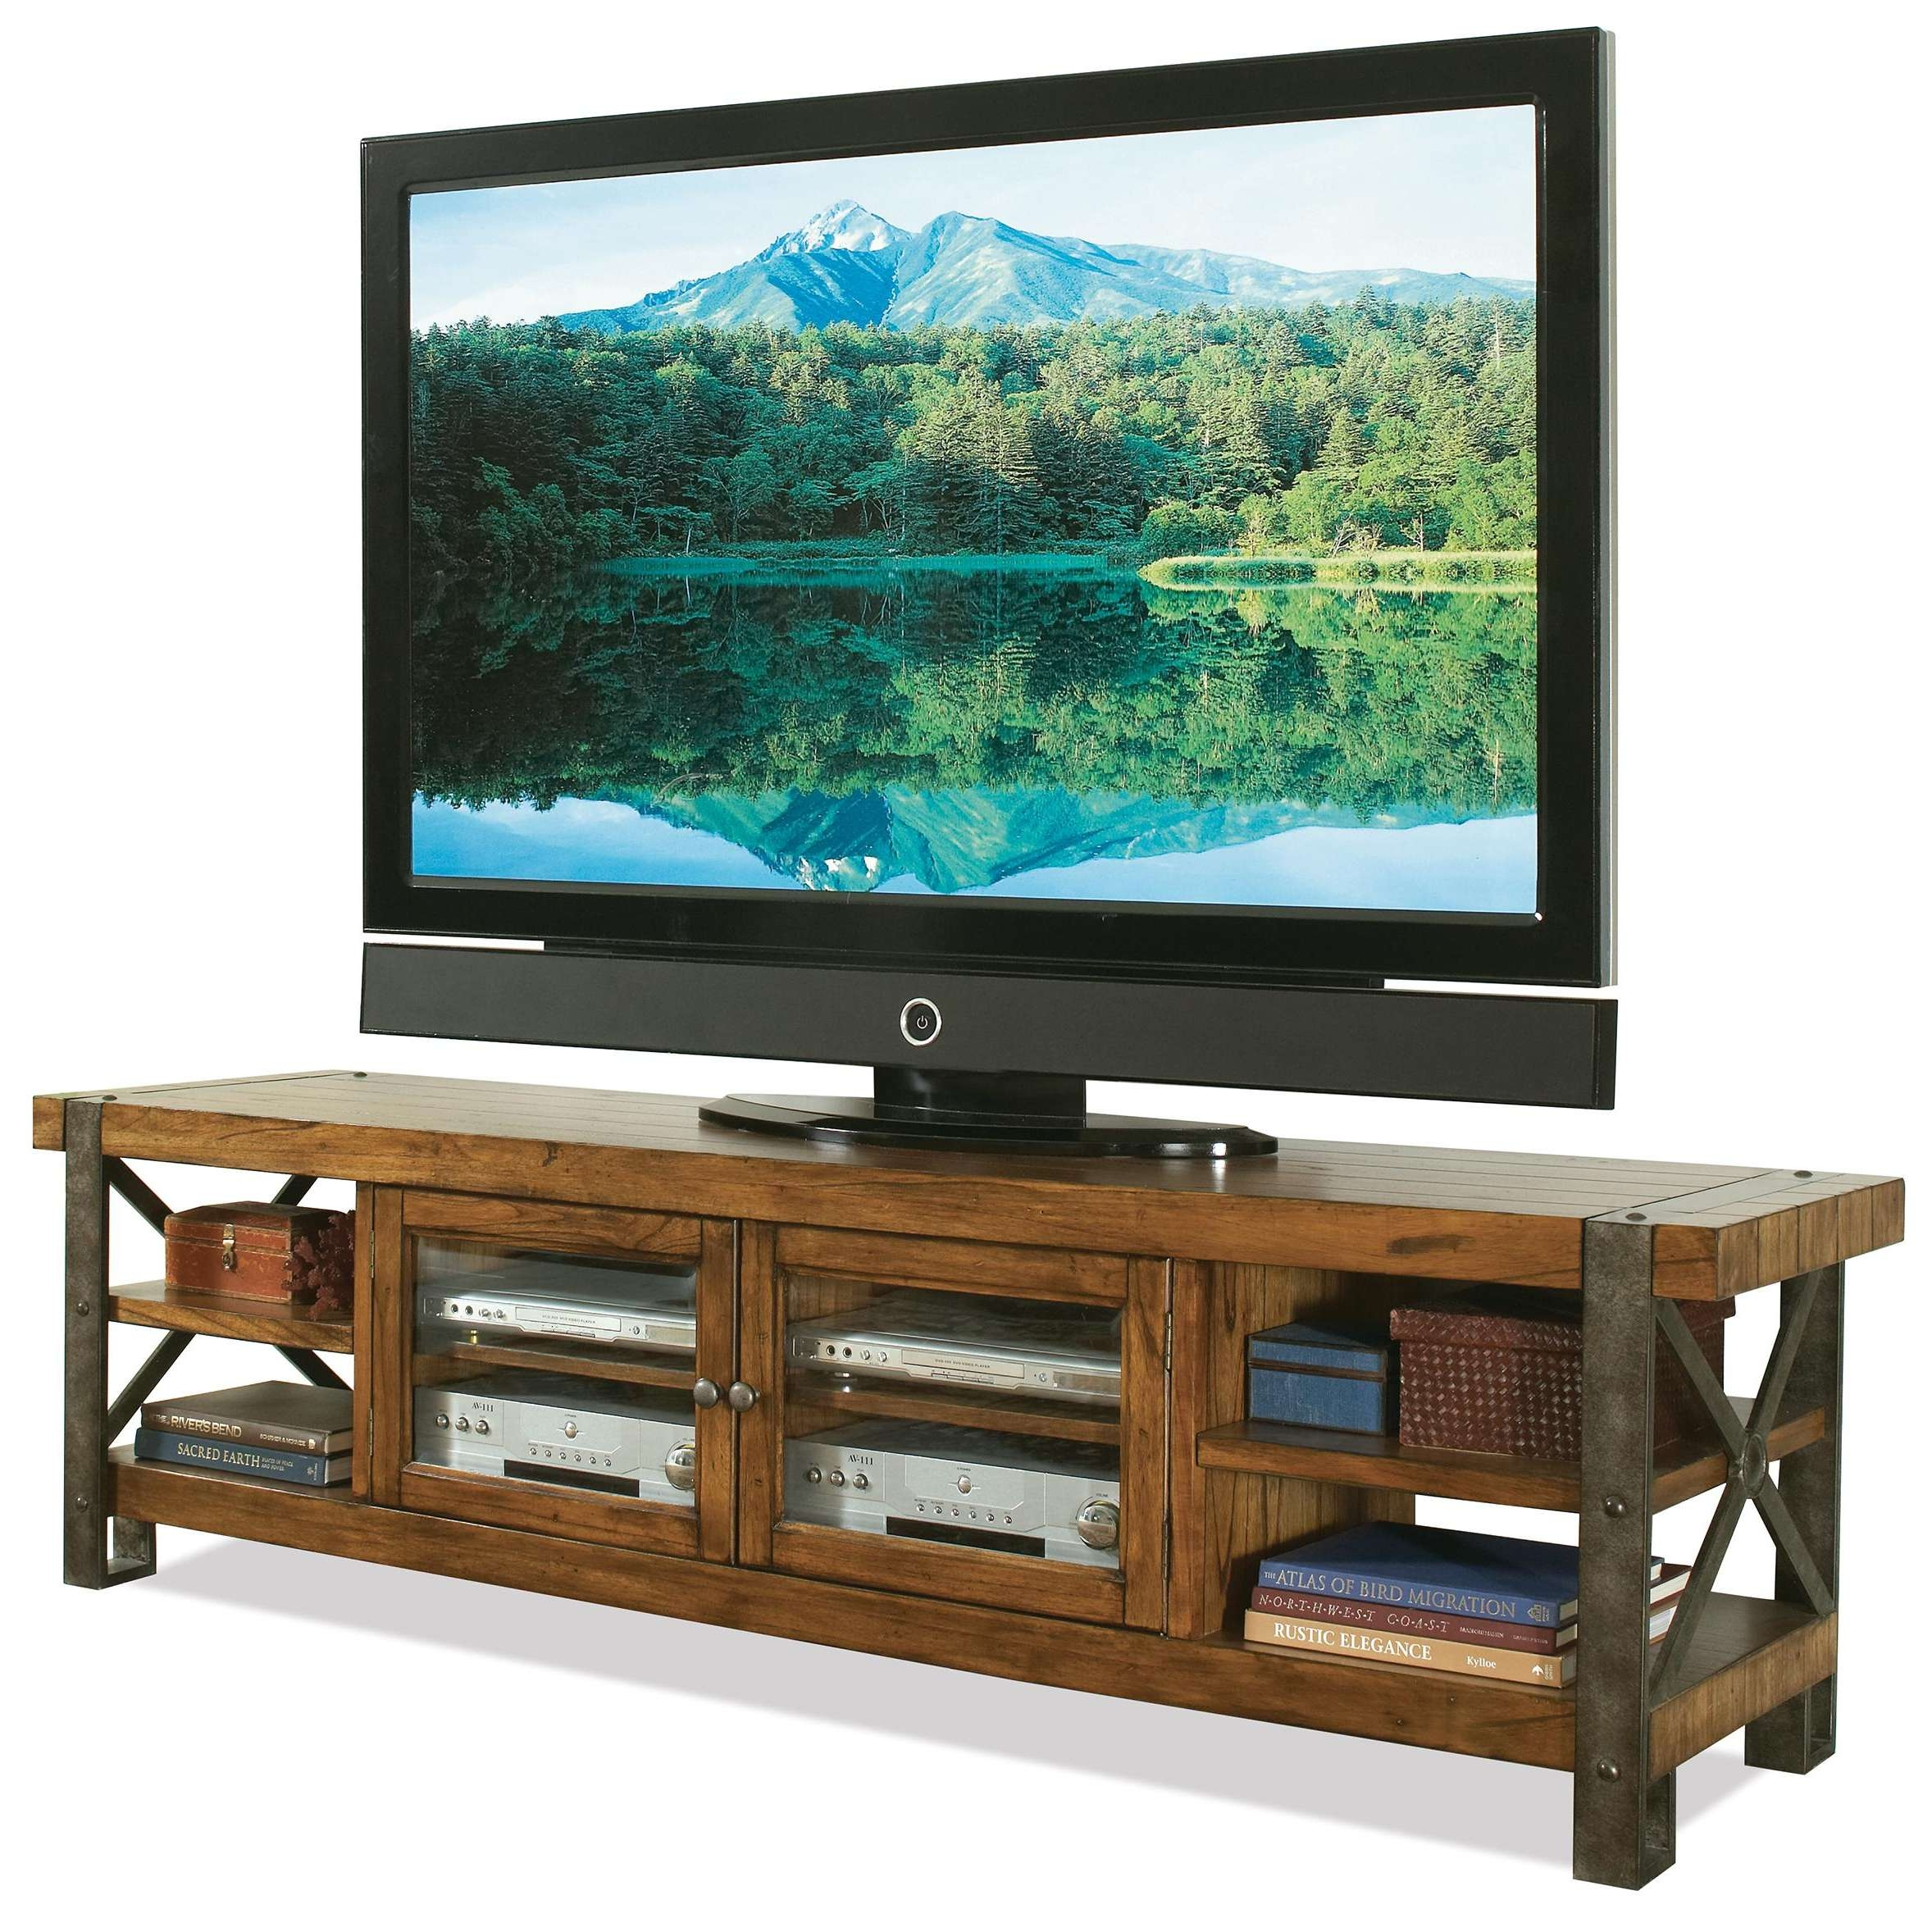 Riverside Furniture Sierra Rustic 80 In Tv Console W/ Glass Doors Inside Rustic Wood Tv Cabinets (View 17 of 20)